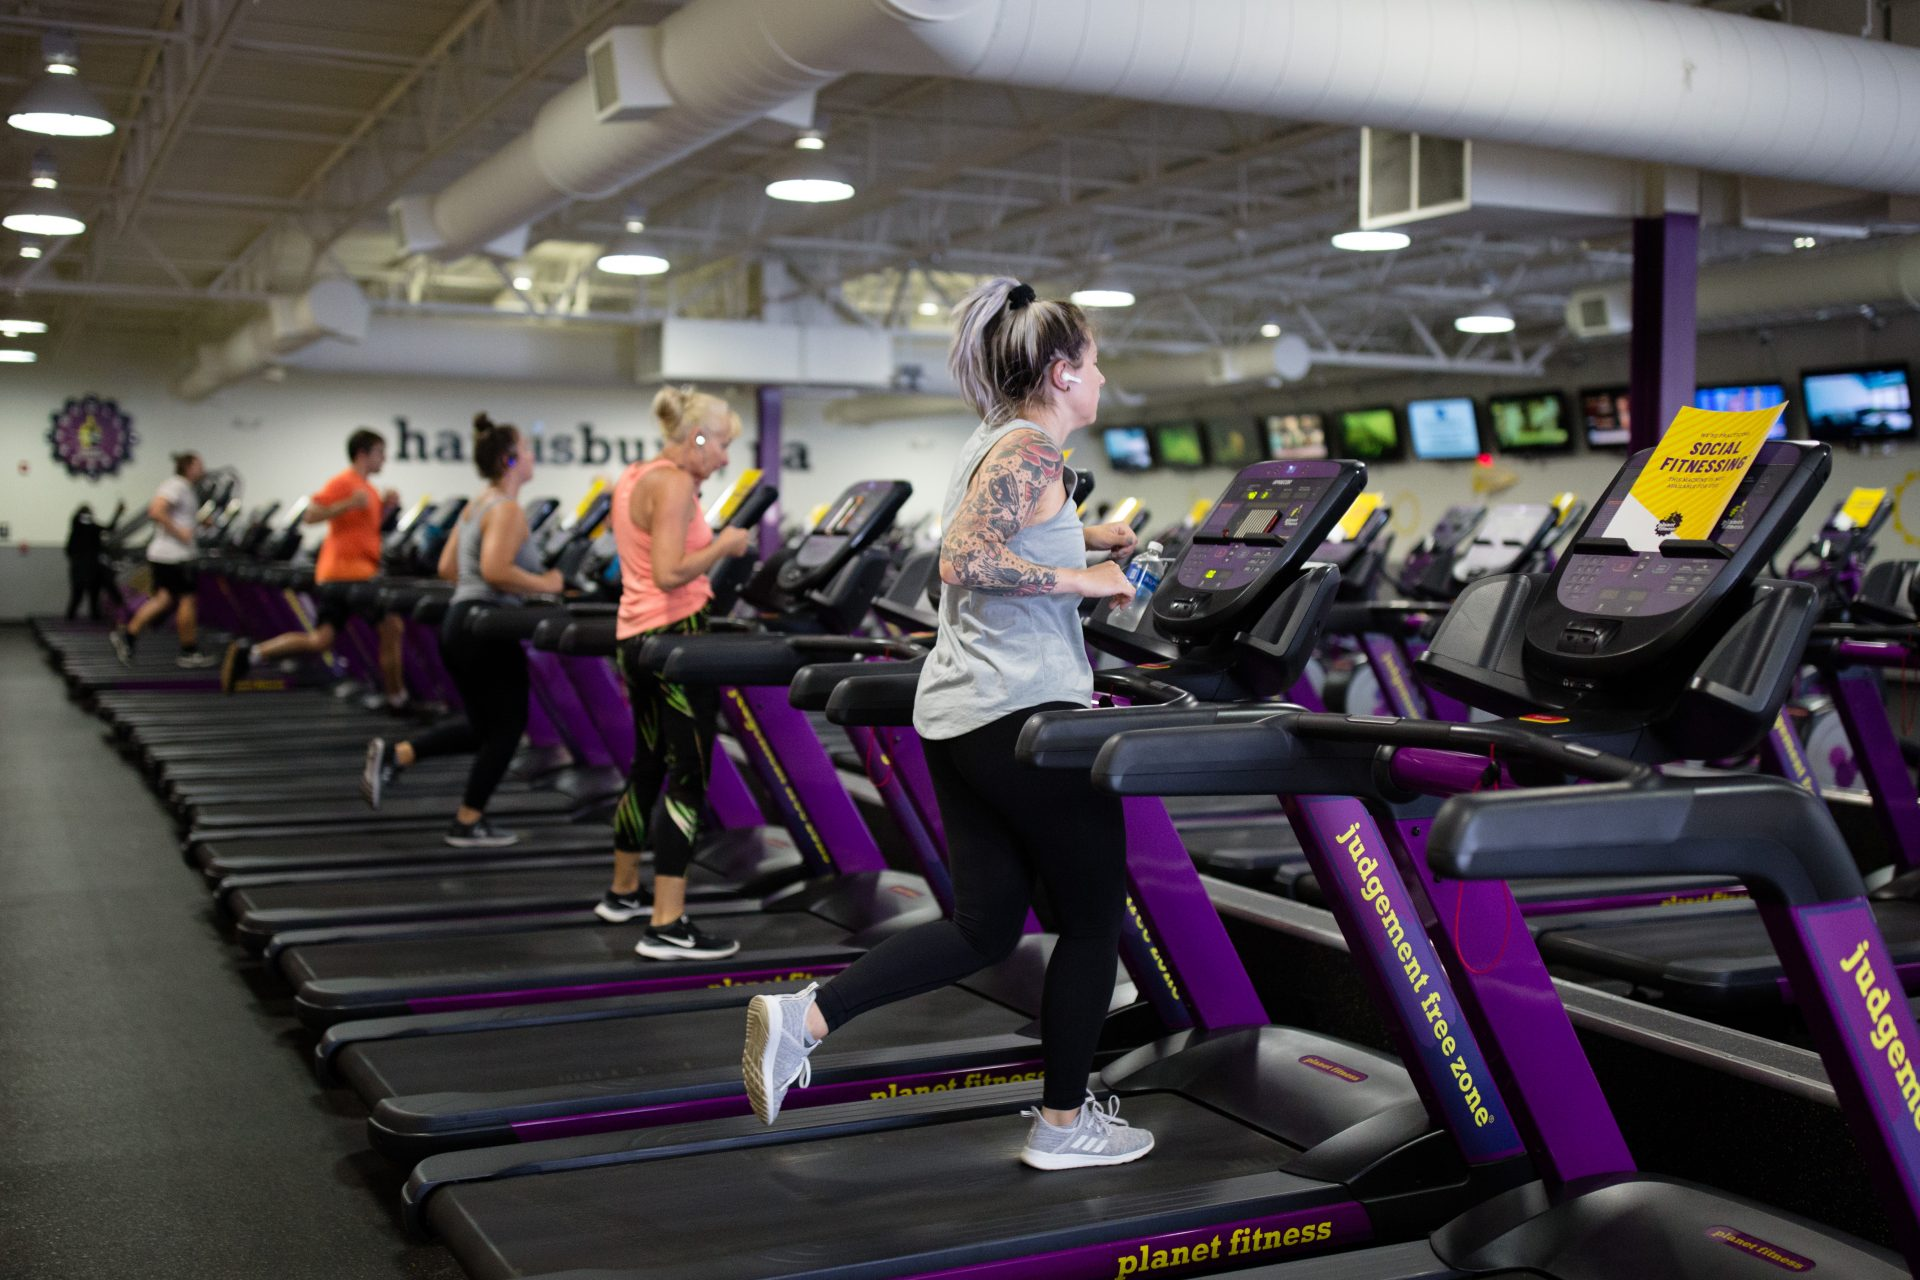 People exercise on treadmills at the Planet Fitness along Allentown Boulevard in Harrisburg on June 19, 2020. As the gym reopened to customers, it blocked off half the treadmills to maintain distance between patrons.